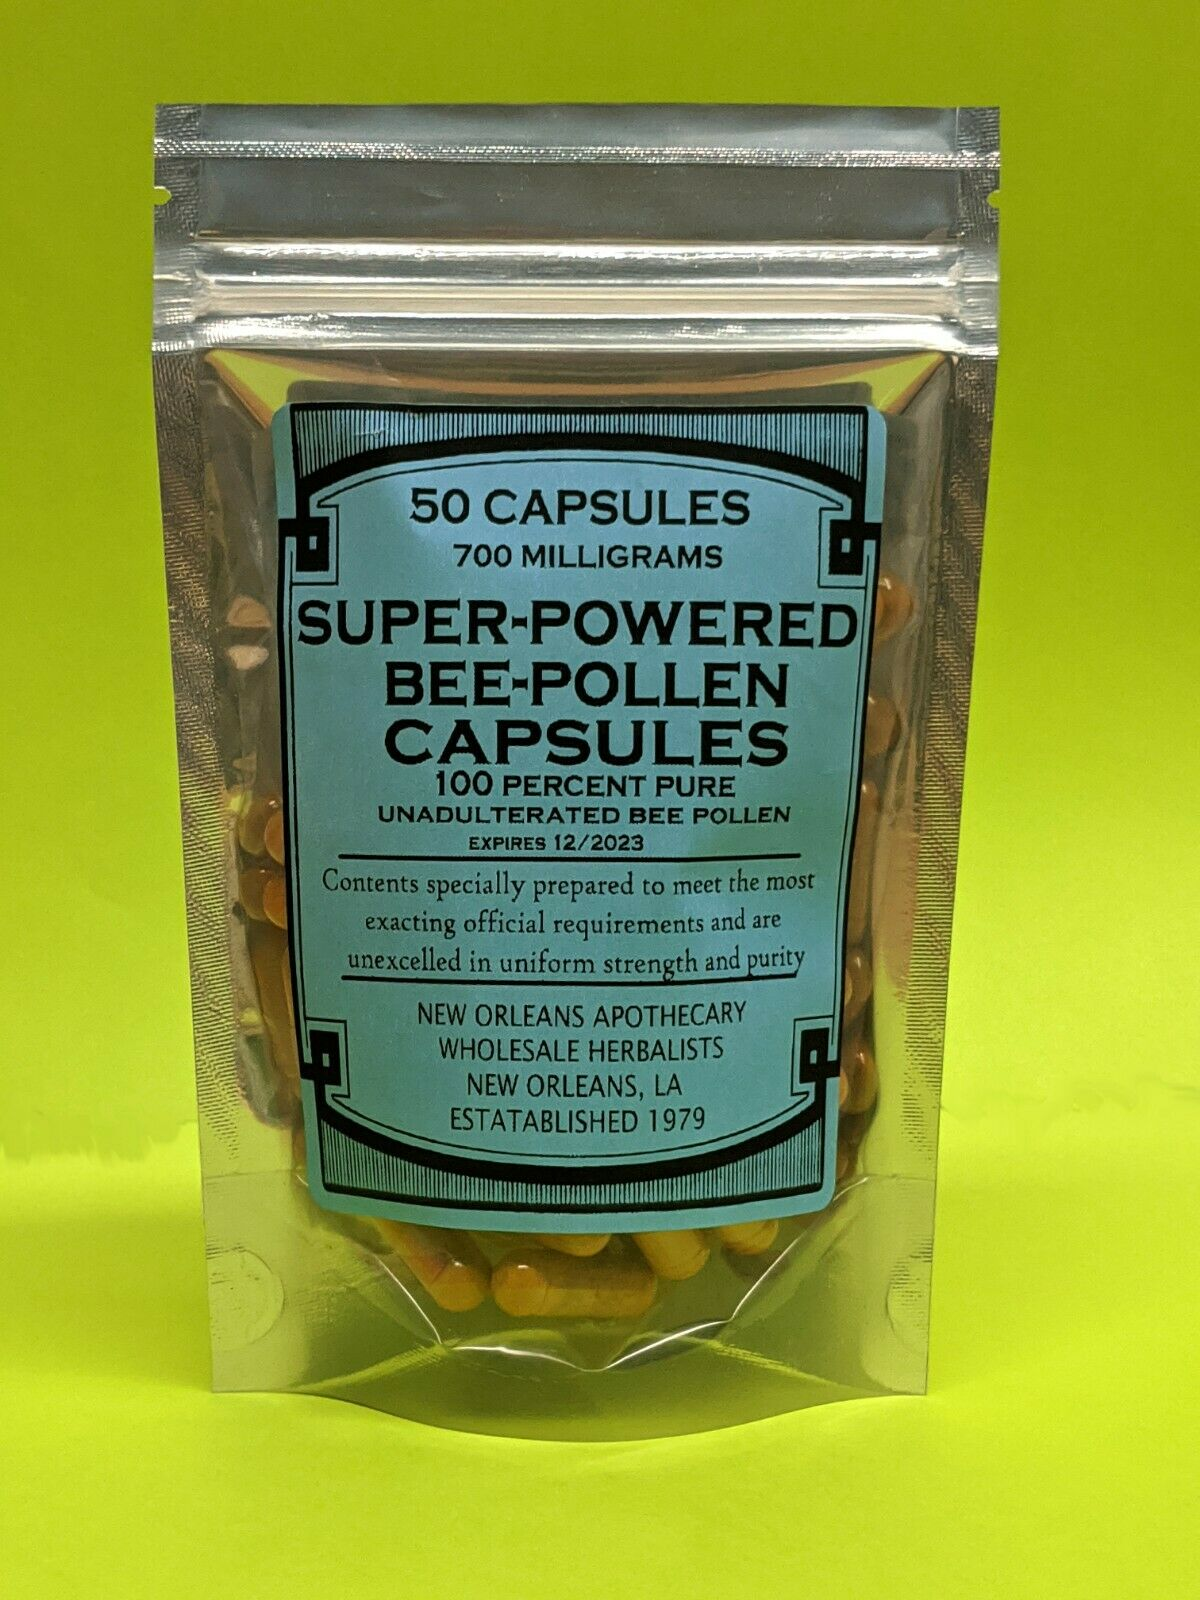 **Super Powered Bee Pollen Capsules** 700mg**100% PURE BEE POLLEN*DETOX*HEALTH